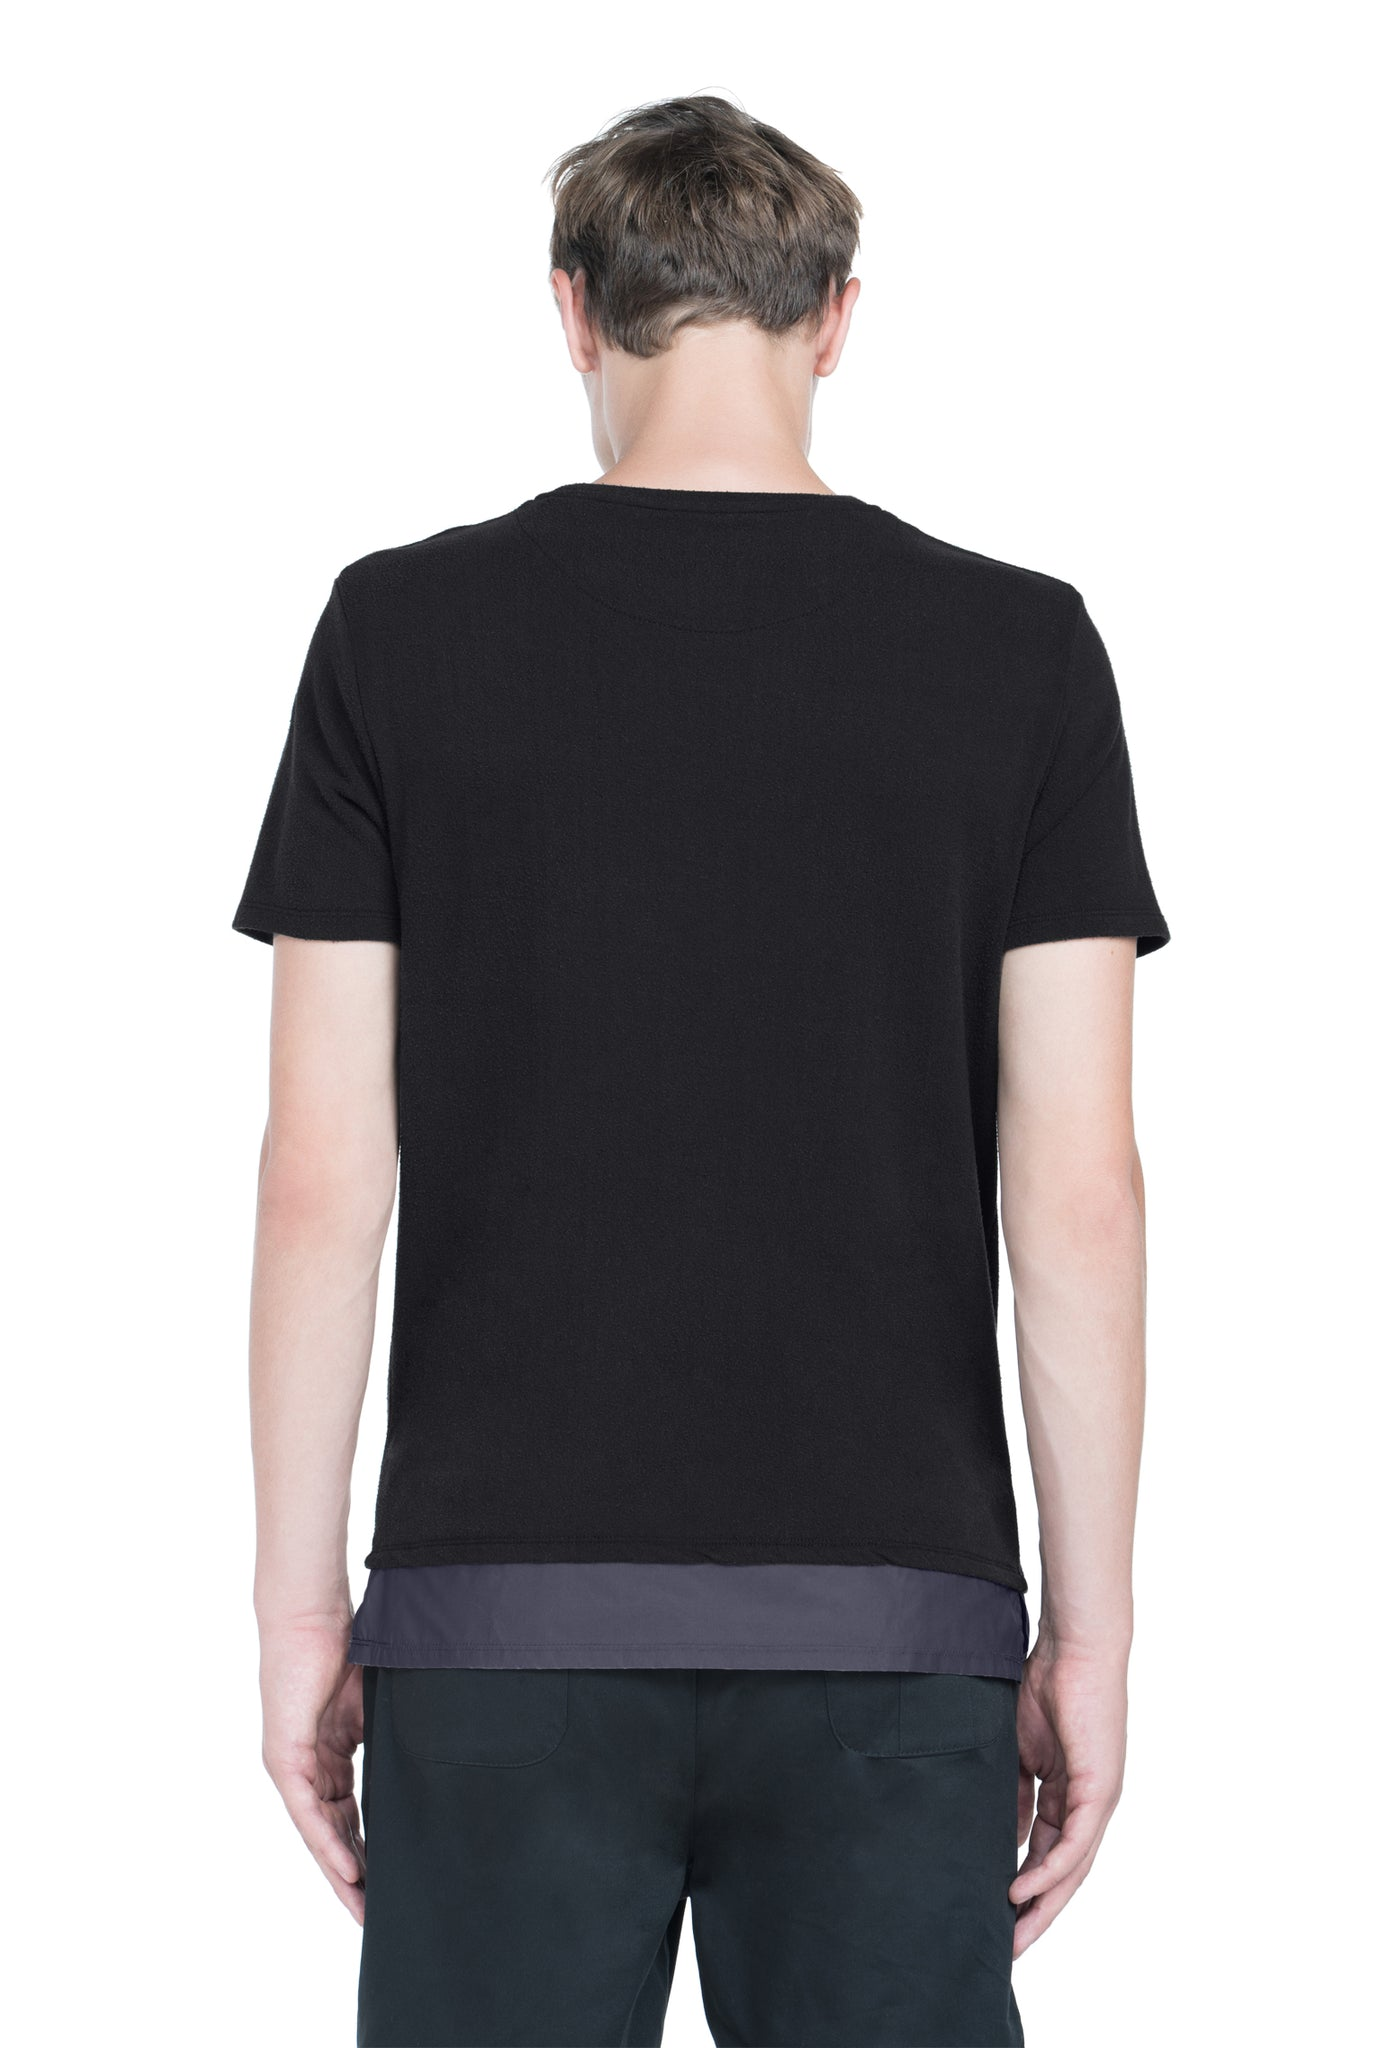 INGLEWOOD - T-SHIRT - JET BLACK